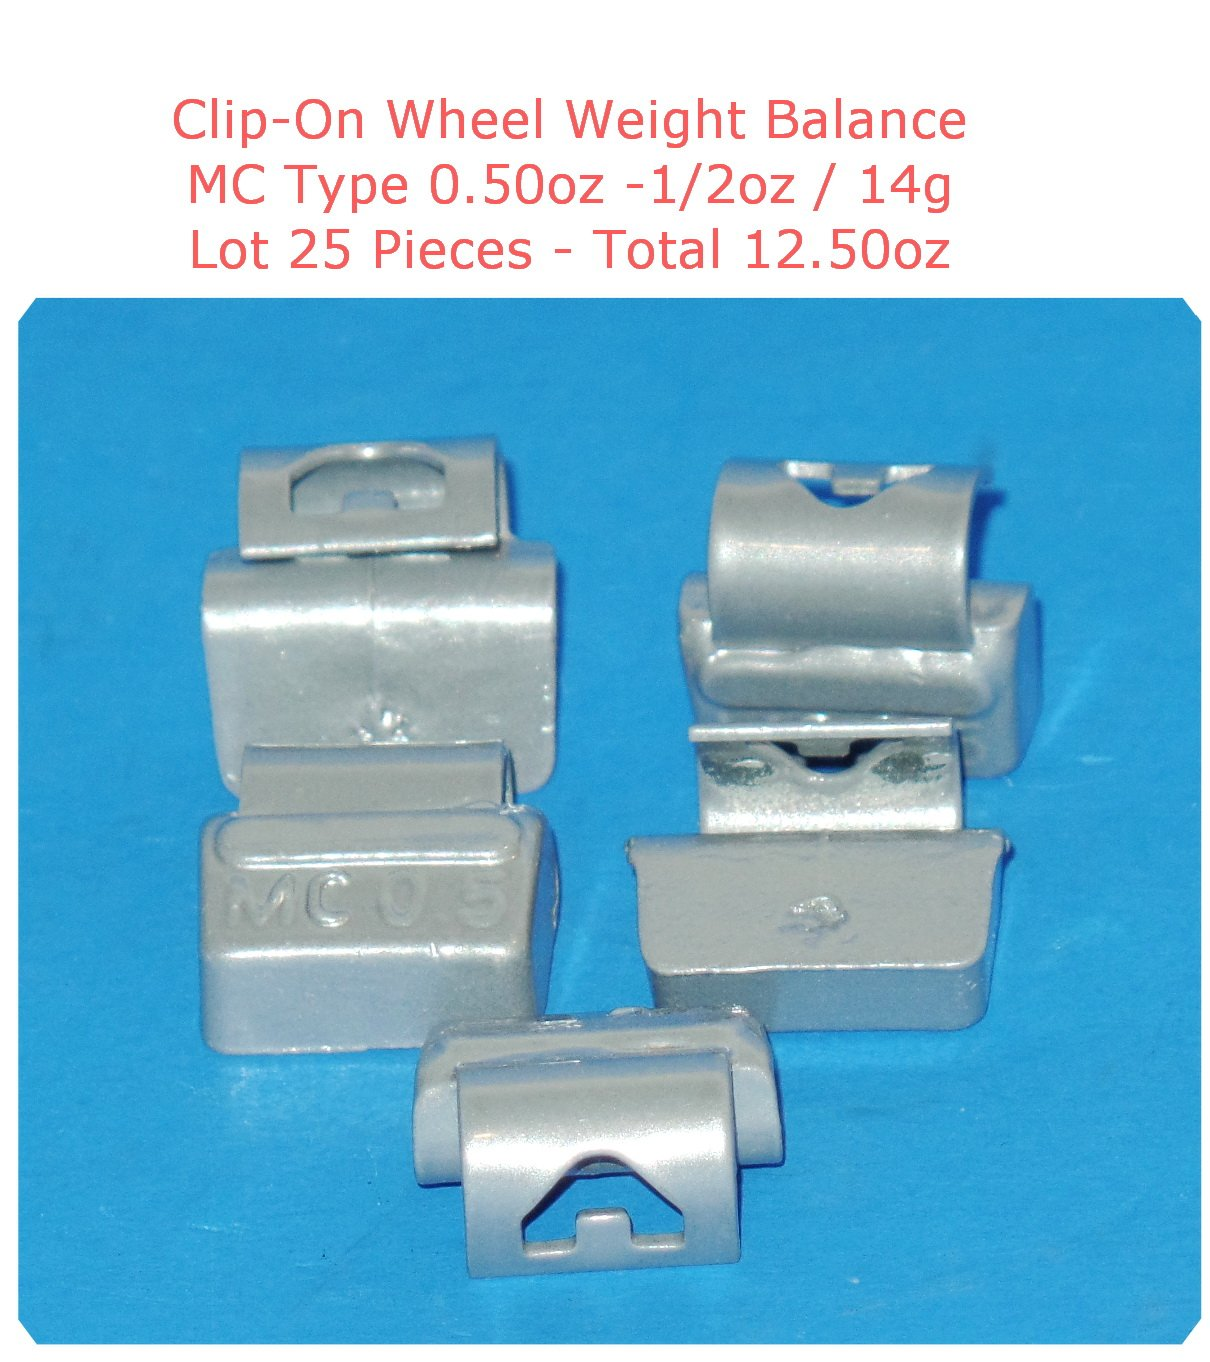 (25 Pieces) ZN CLIP-ON WHEEL WEIGHT BALANCE 0.50 1/2oz MC Type Total 12.50oz (Use for All Types of Alloy wheels On Passenger Cars , Trucks , Vans & Motorcycles)